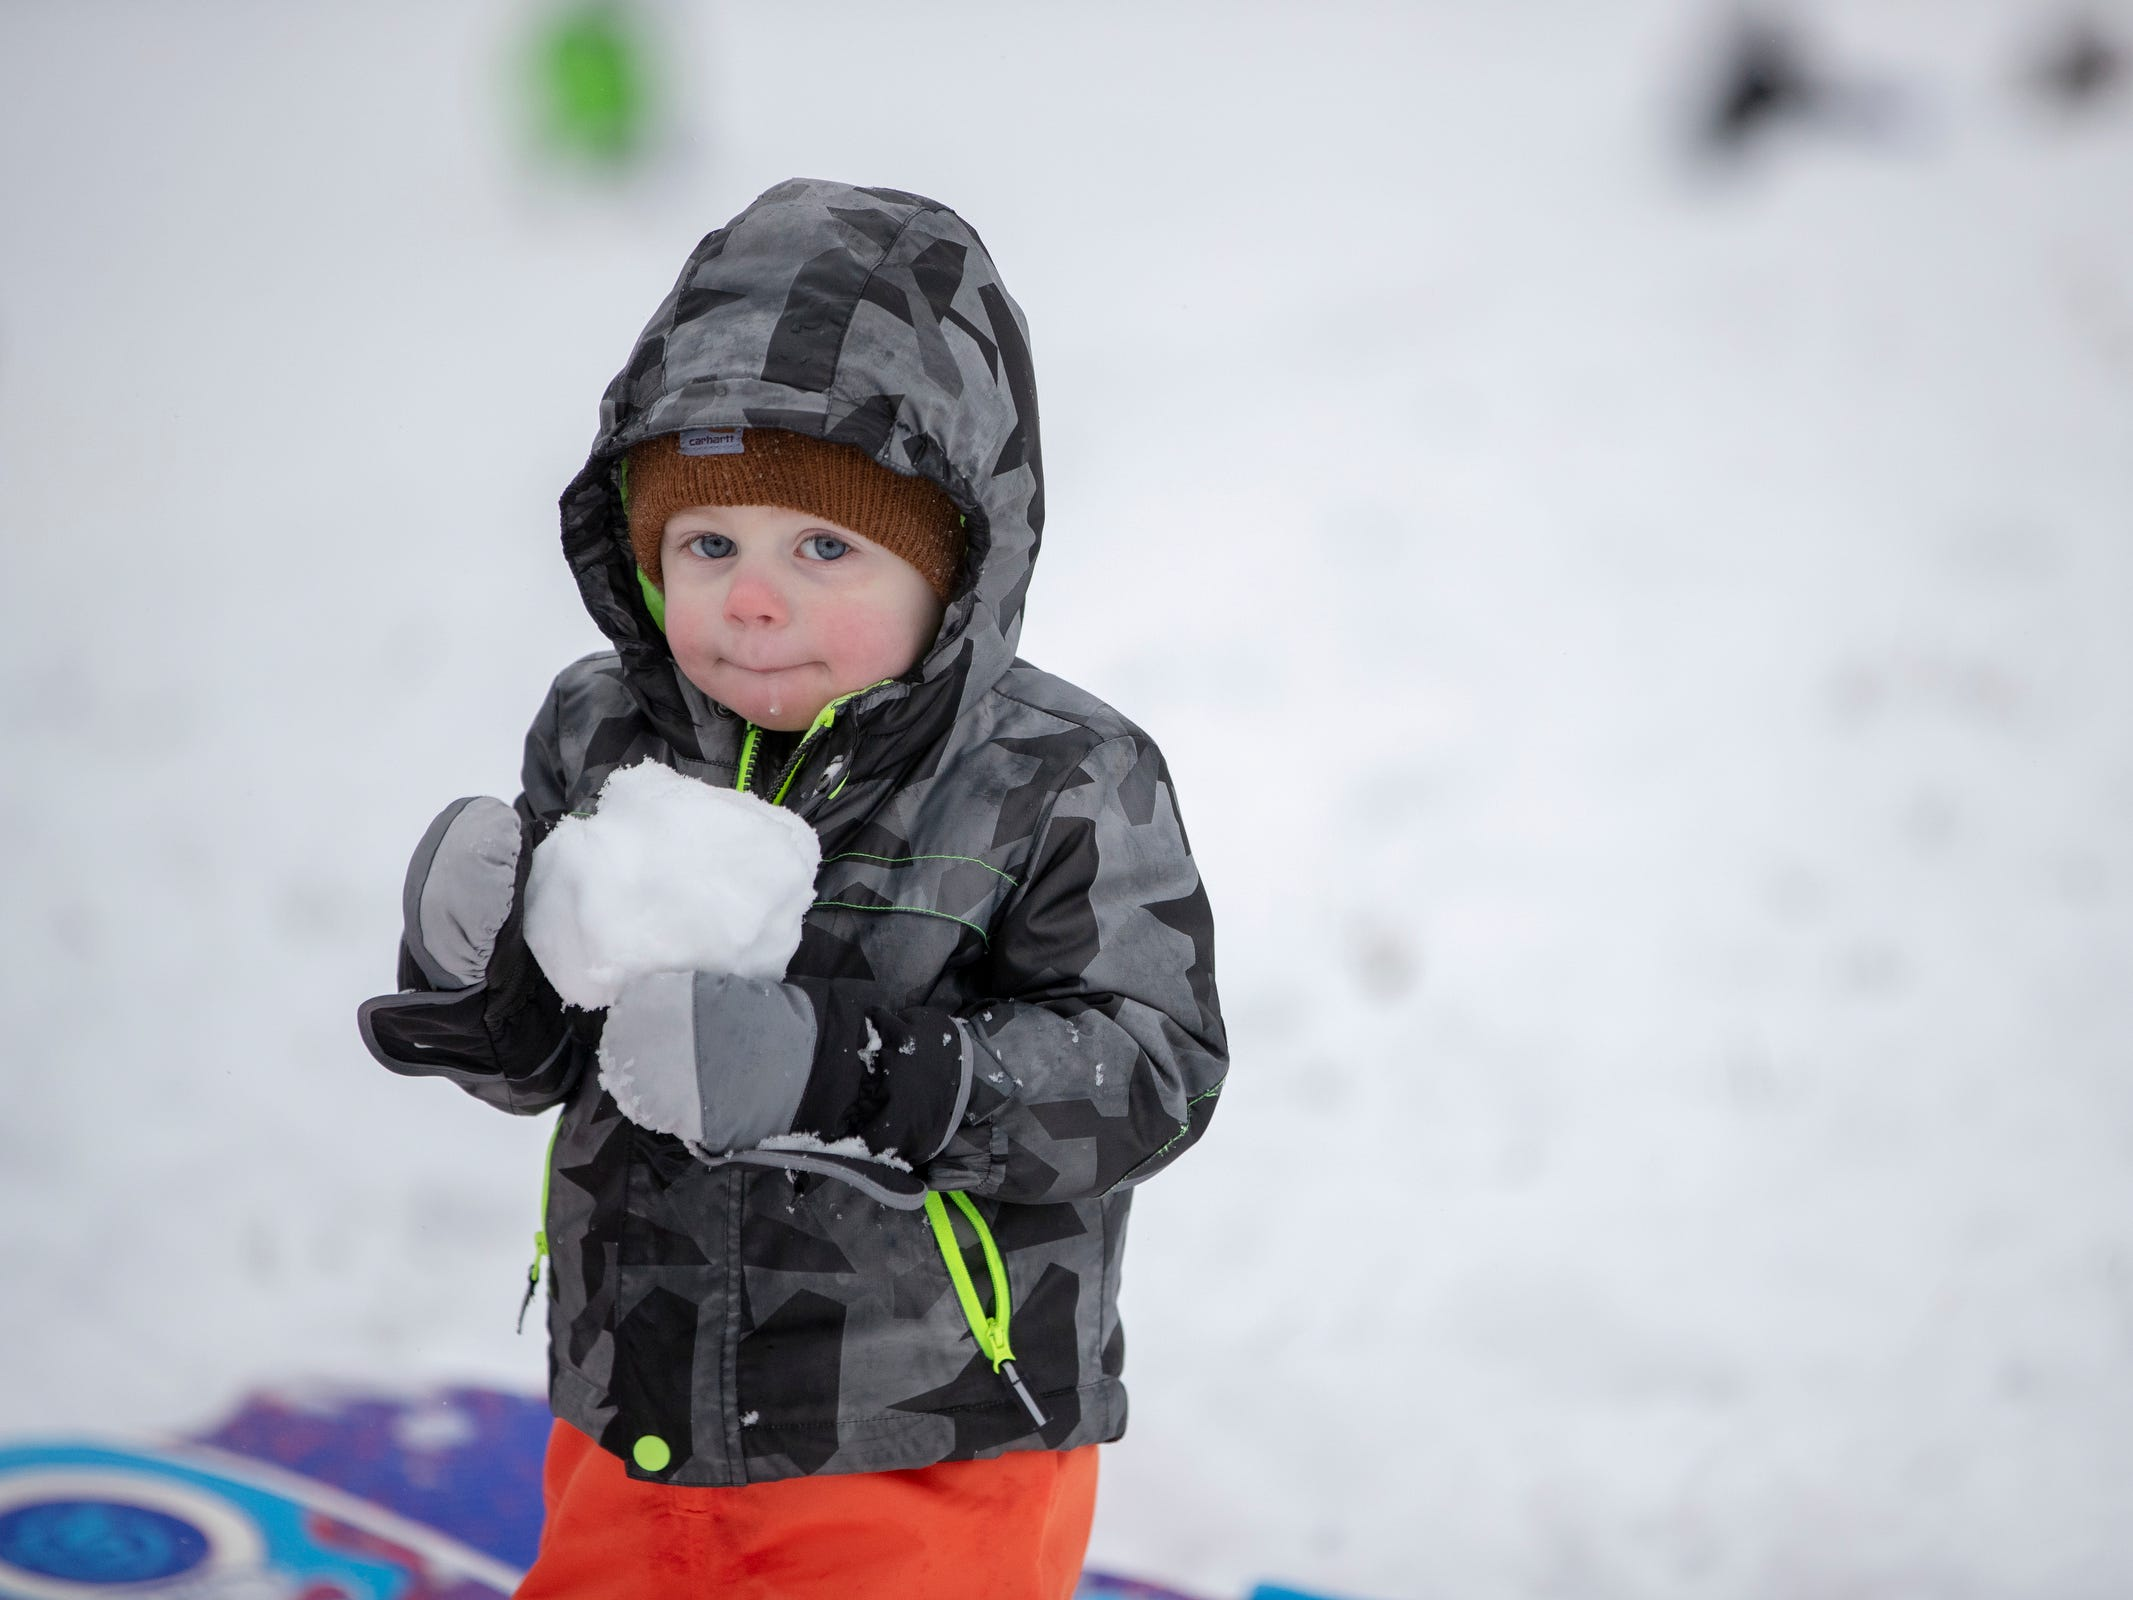 Bobby Jennings IV, 2, holds a snowball as he sleds with his parents and two sisters at Butler University on a day where 5-7 inches of snow is expected to fall in Central Indiana, Indianapolis, Saturday, Jan. 12, 2019.